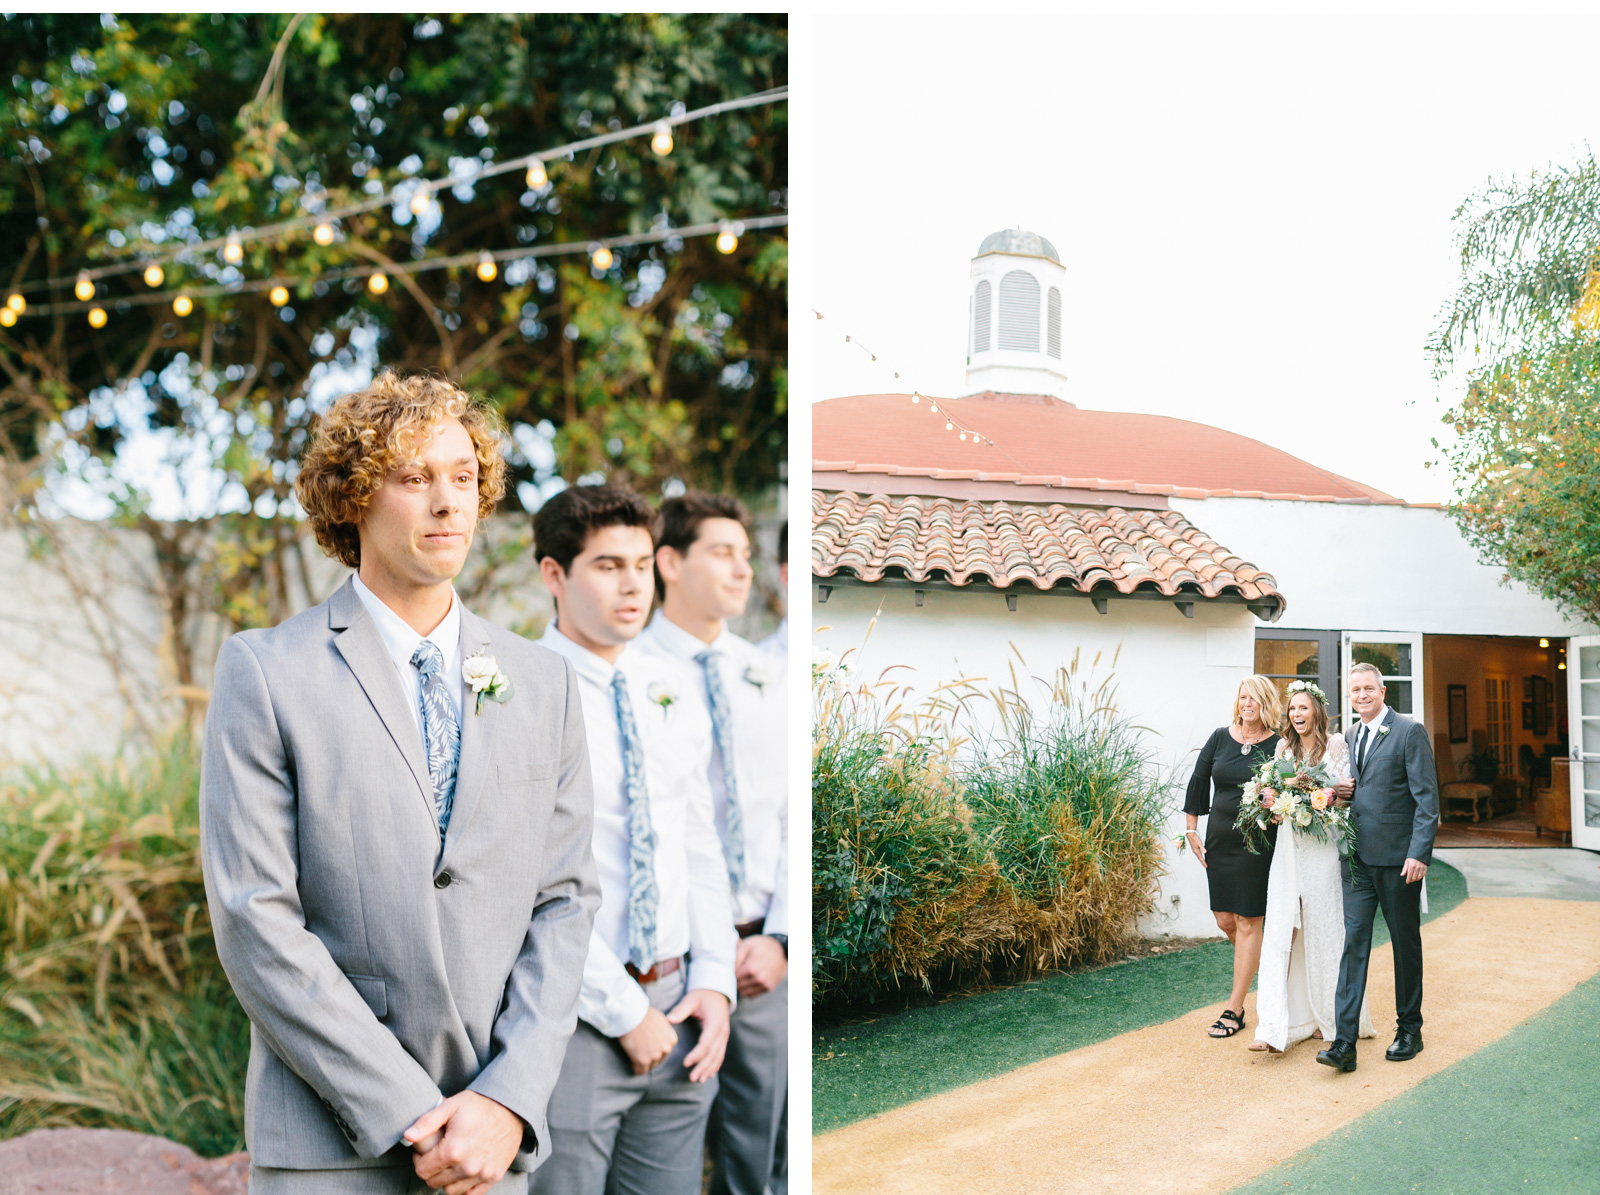 Surf-Wedding-Natalie-Schutt-Photography-Wedding-Chicks_03.jpg